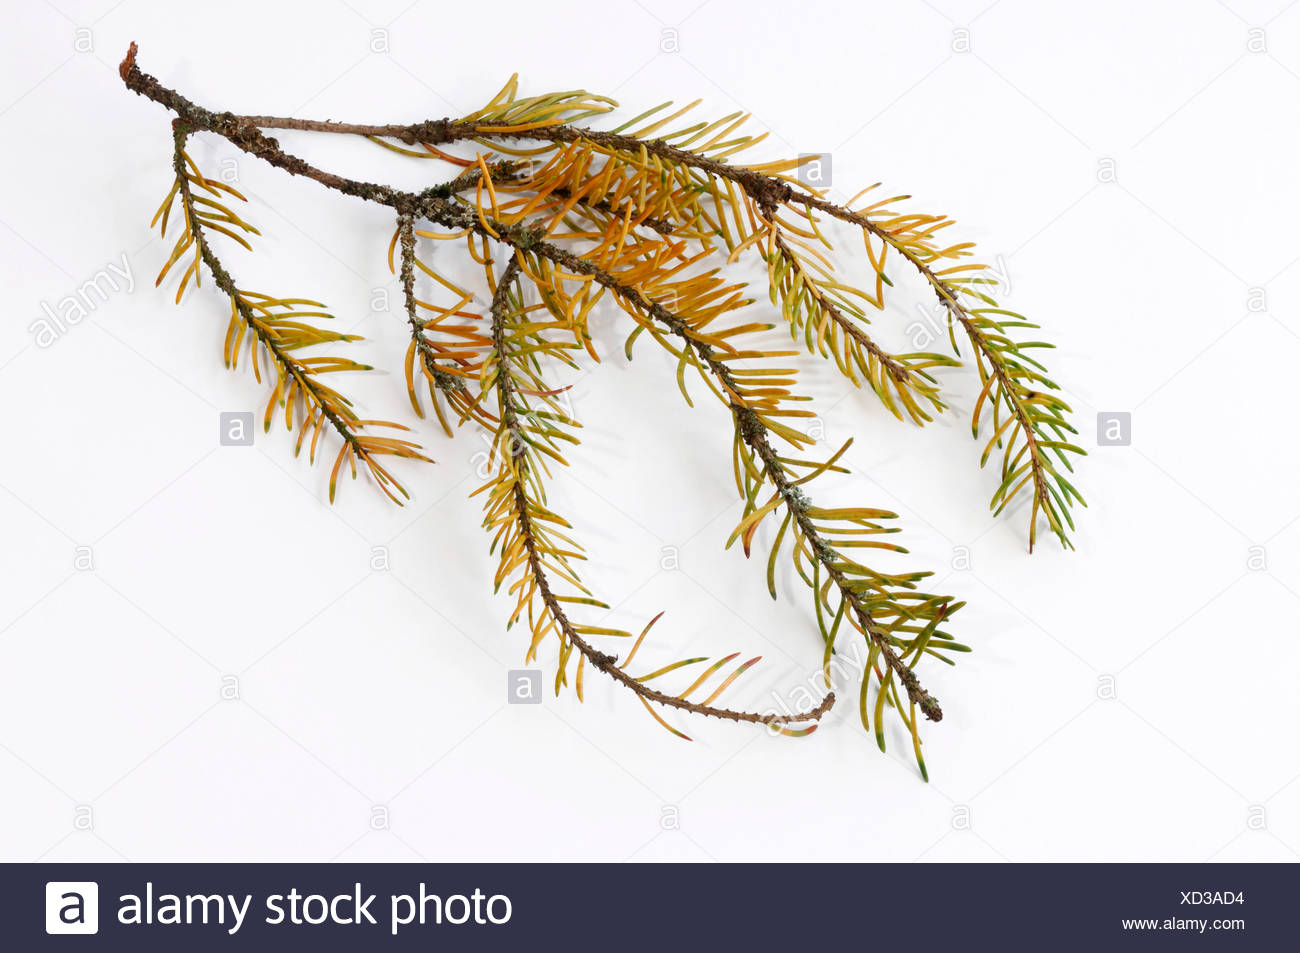 Norway Spruce, Common Spruce (Picea abies). Seriously damaged twig with fallen off needles and discoloration of needles. Studio picture against a white background. Germany - Stock Image